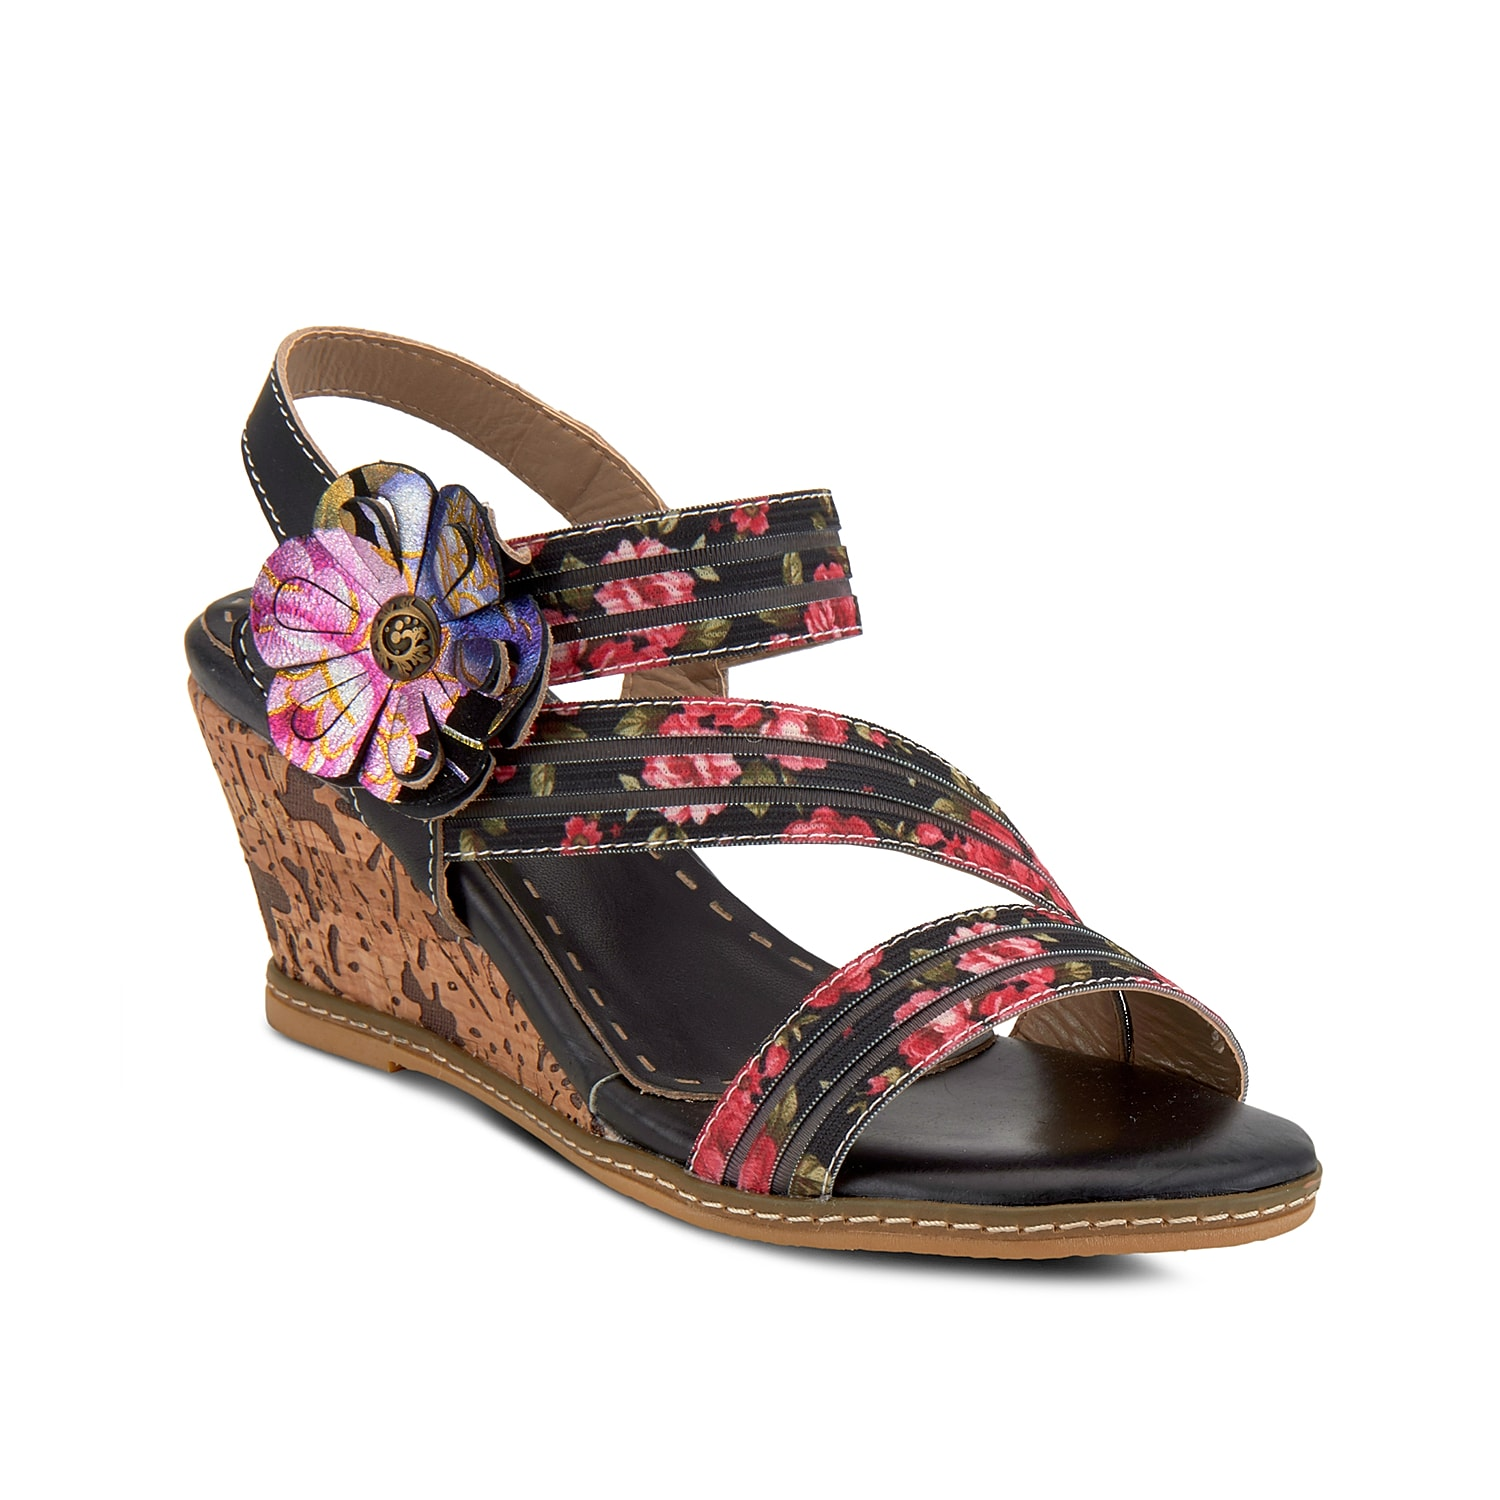 The Landy wedge sandal from L\\\'Artiste by Spring Step will freshen up all your warm weather looks. With an oversized floral applique and textured cork heel, this strappy pair complements dresses or capris effortlessly.